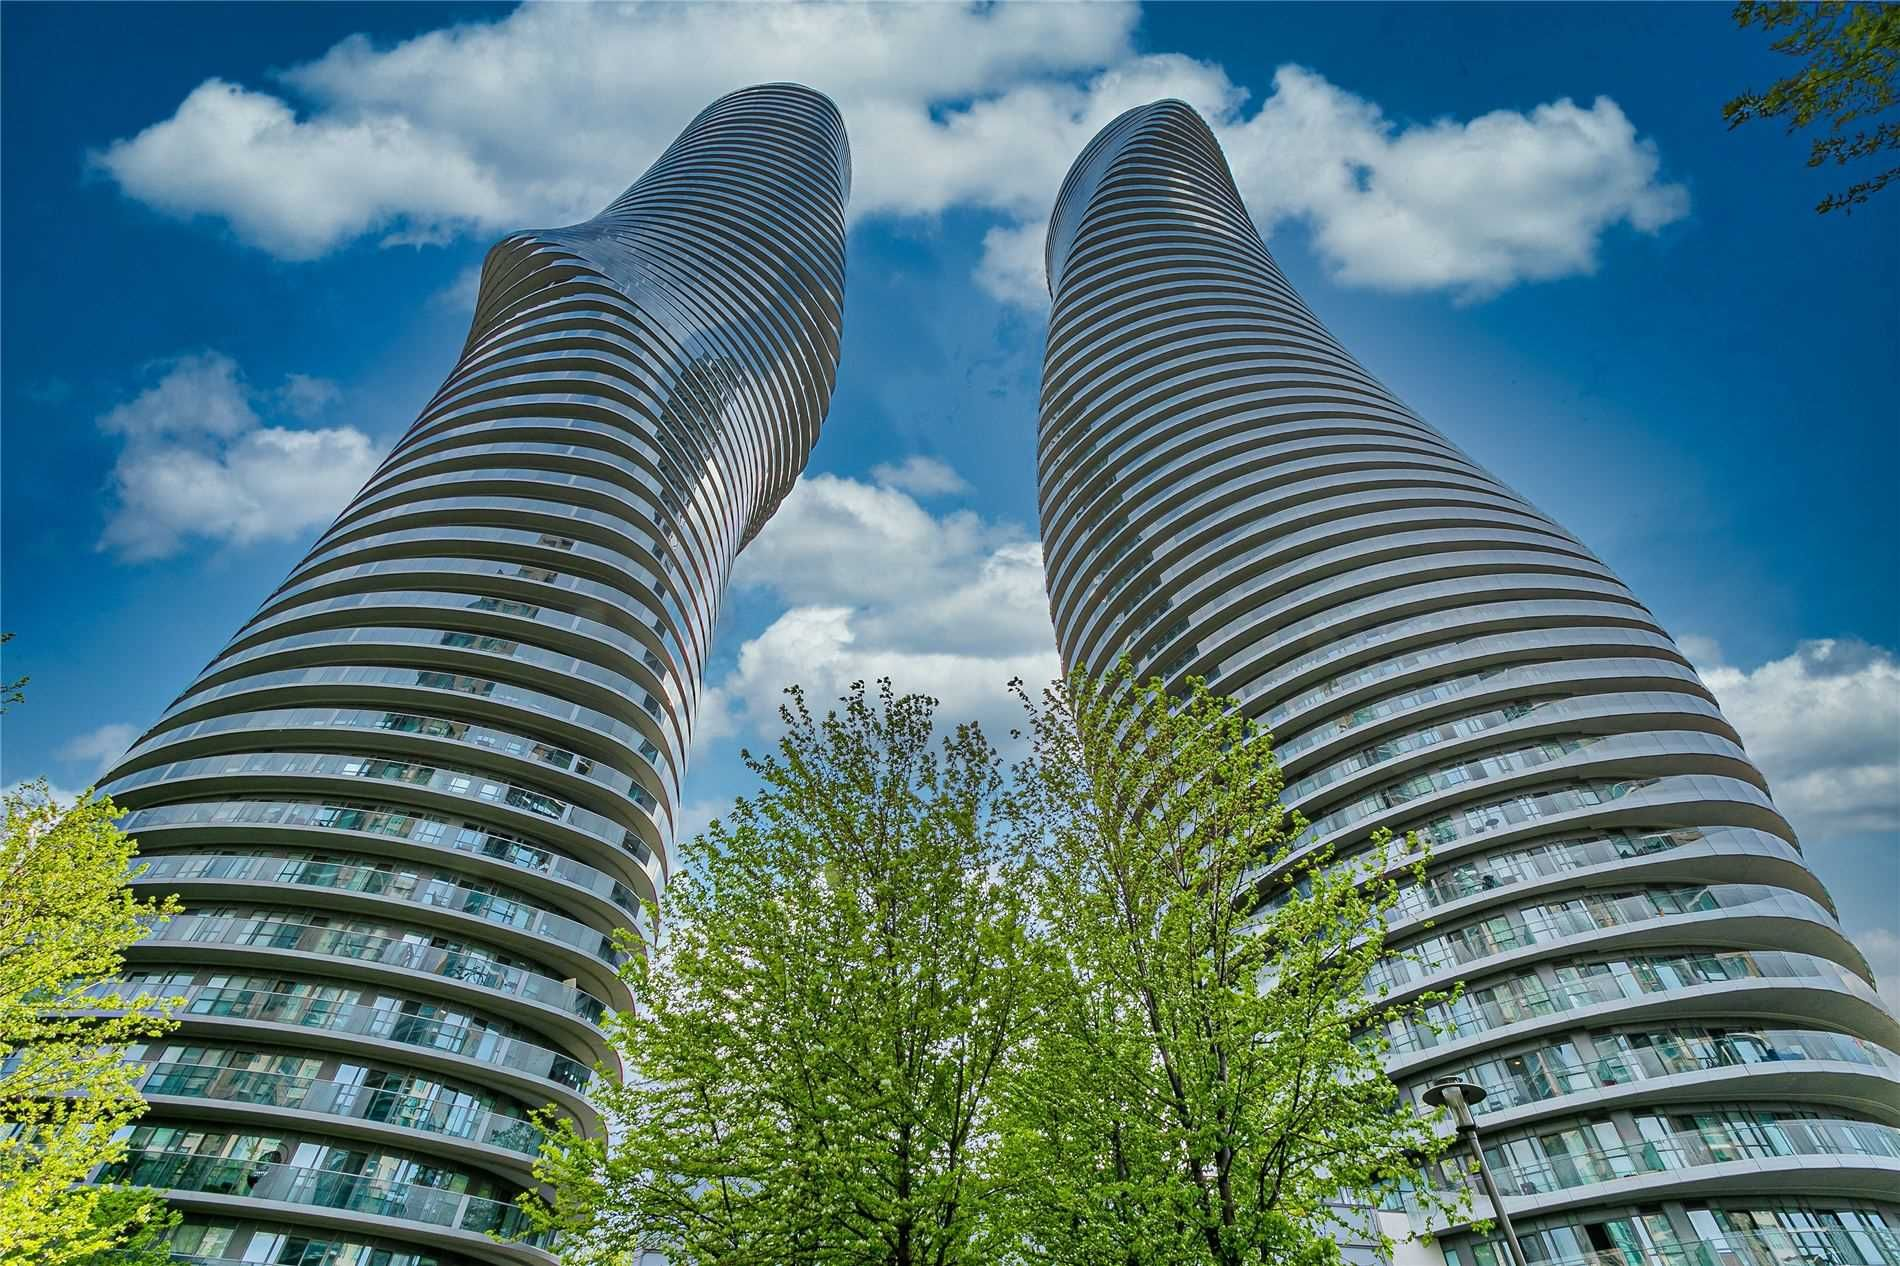 60 Absolute Ave, unit 2202 for sale in Toronto - image #1